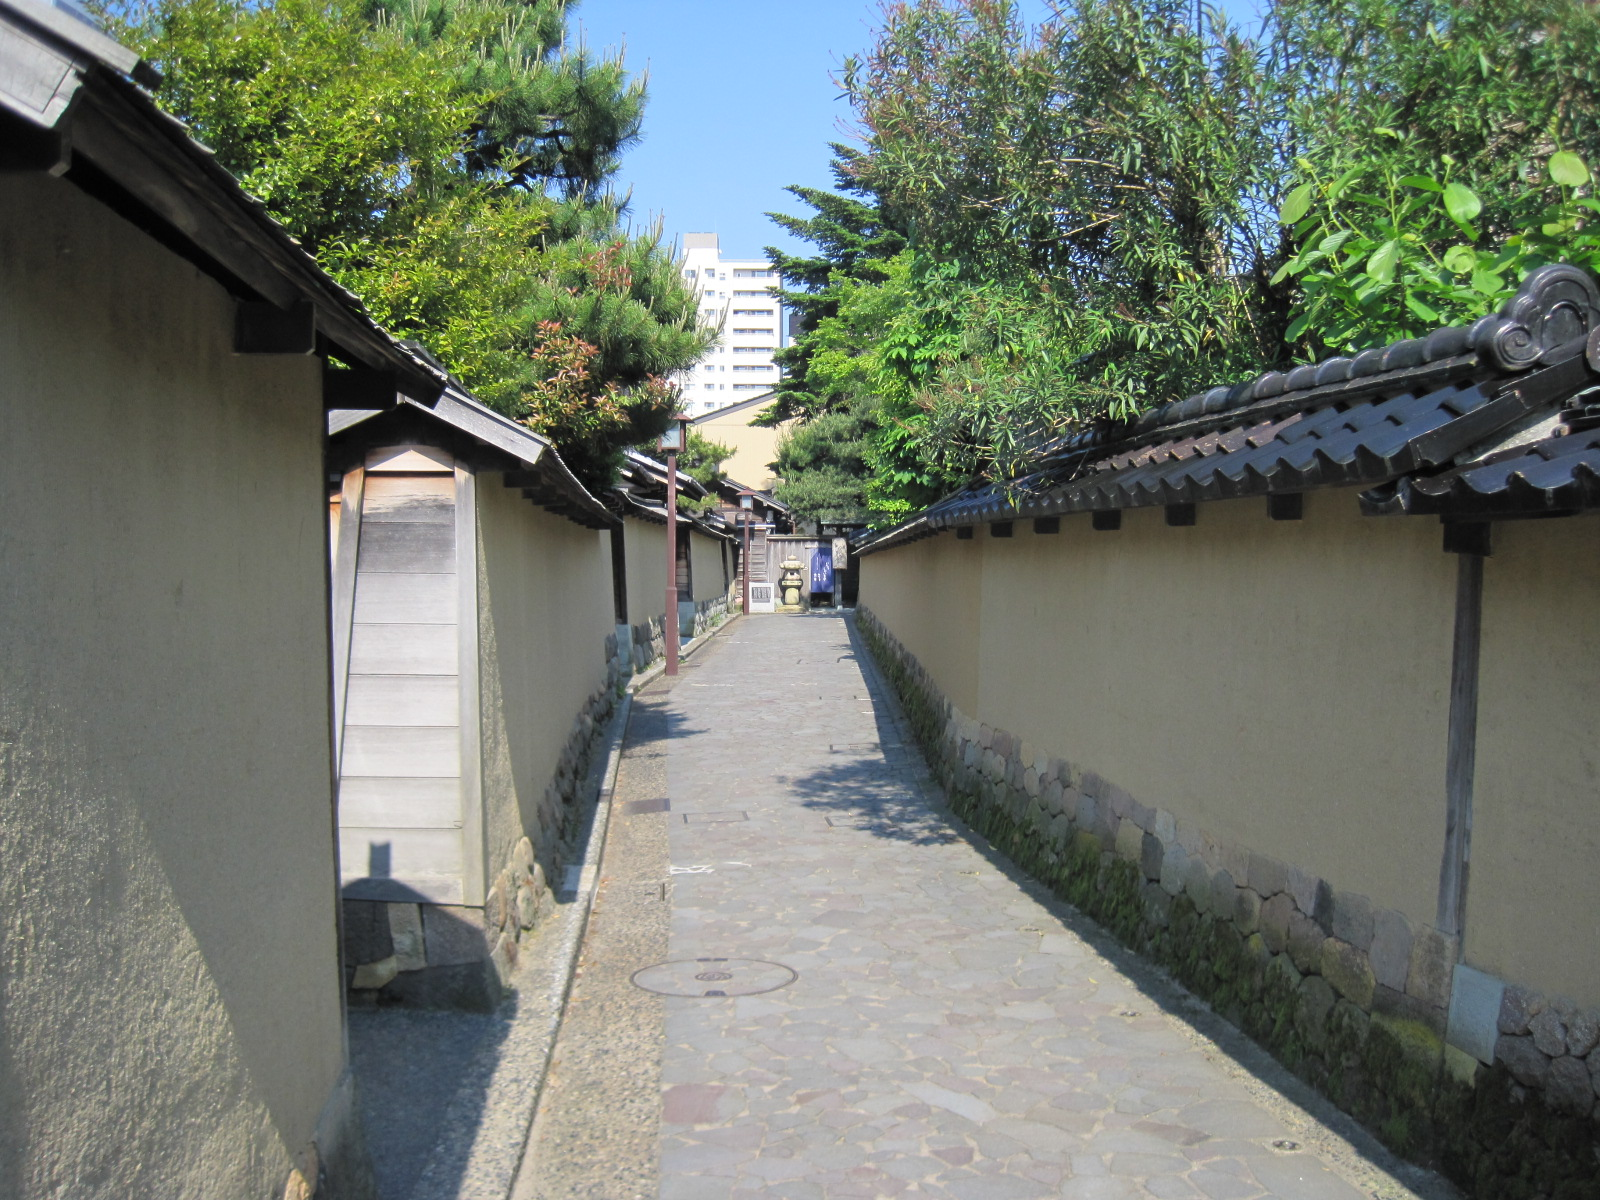 kanazawa buddhist singles How to visit 14 unesco world heritage sites with the 14-day jr pass november 30, 2017 by lily crossley-baxter  with a single complex made of over 100 buildings including two shrines.